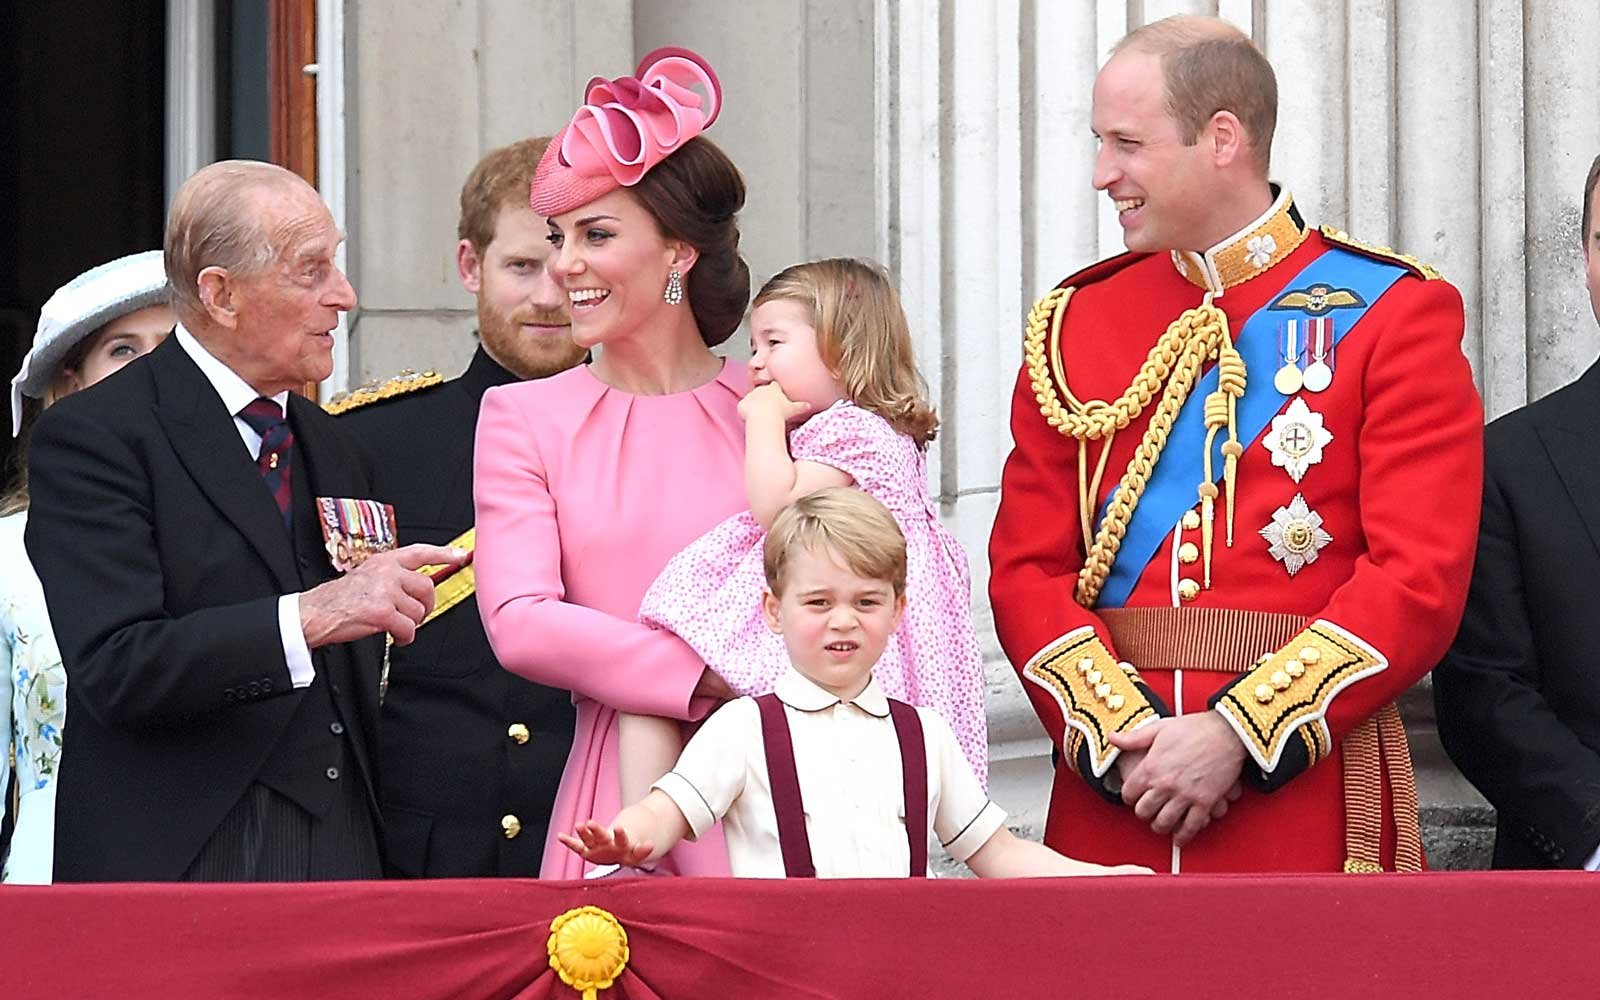 Prince William and Kate Middleton Welcome Third Royal Baby | Travel ...